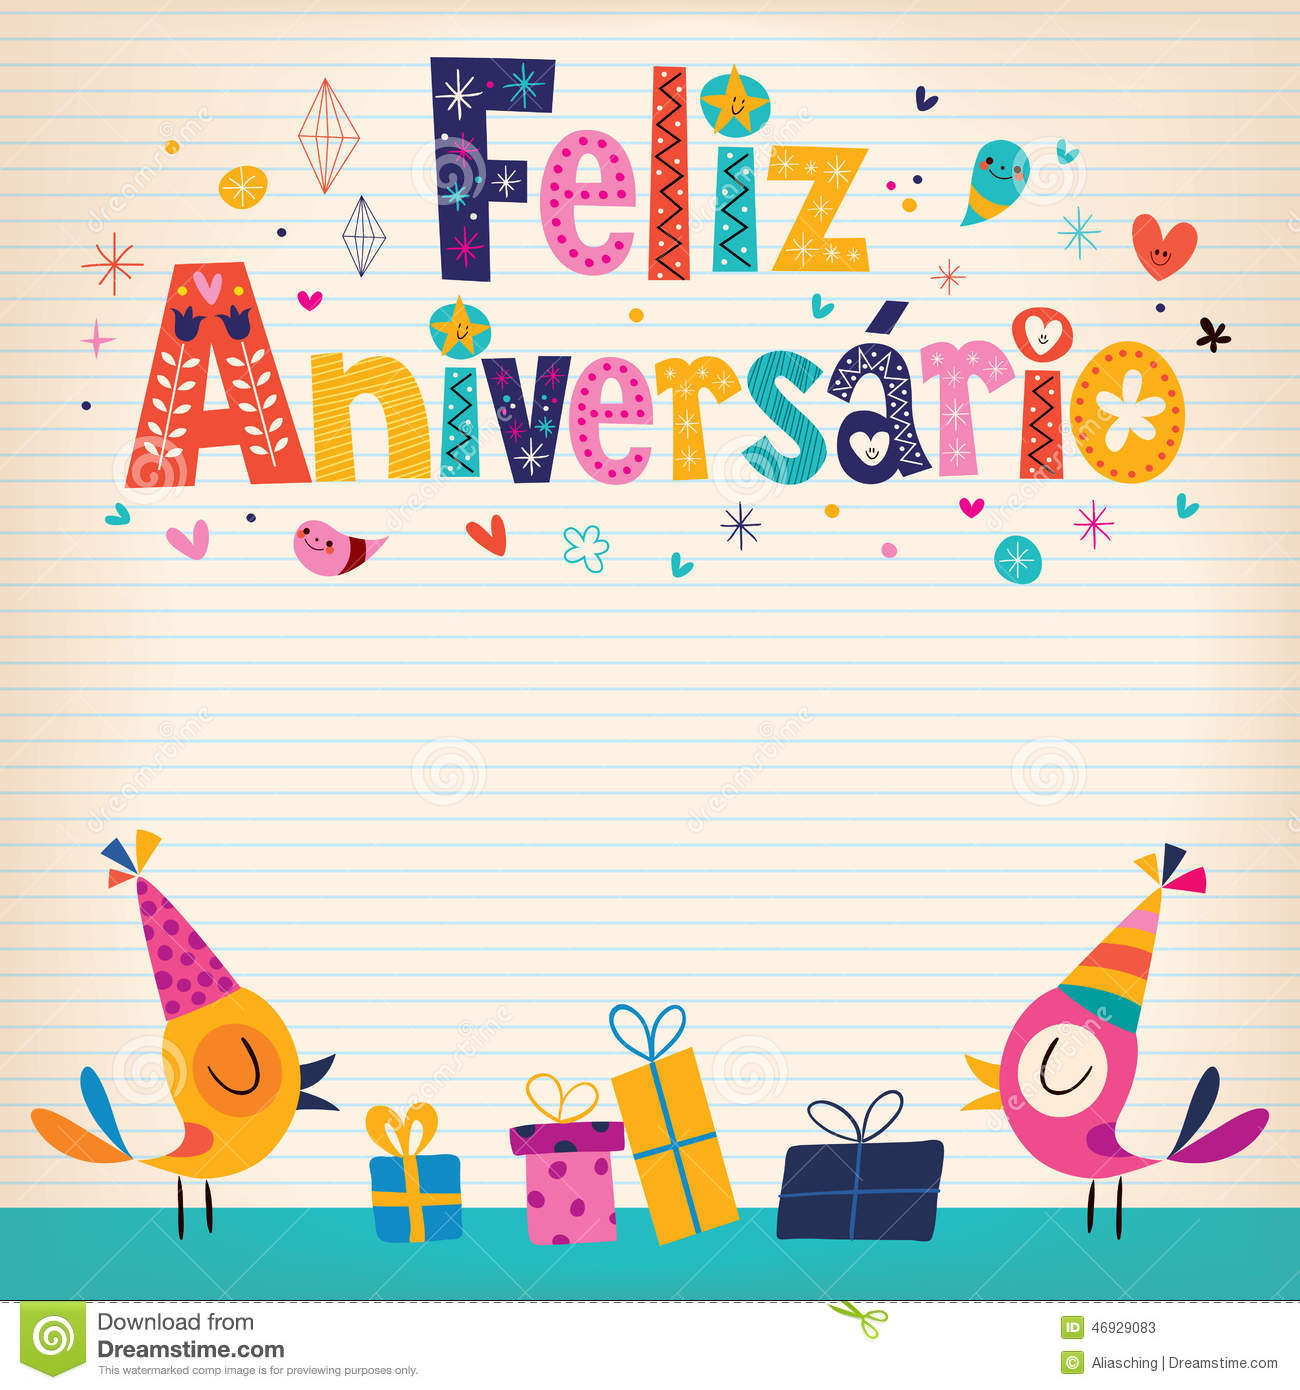 feliz aniversario portuguese happy birthday card retro style decorative lettering cute birds 46929083